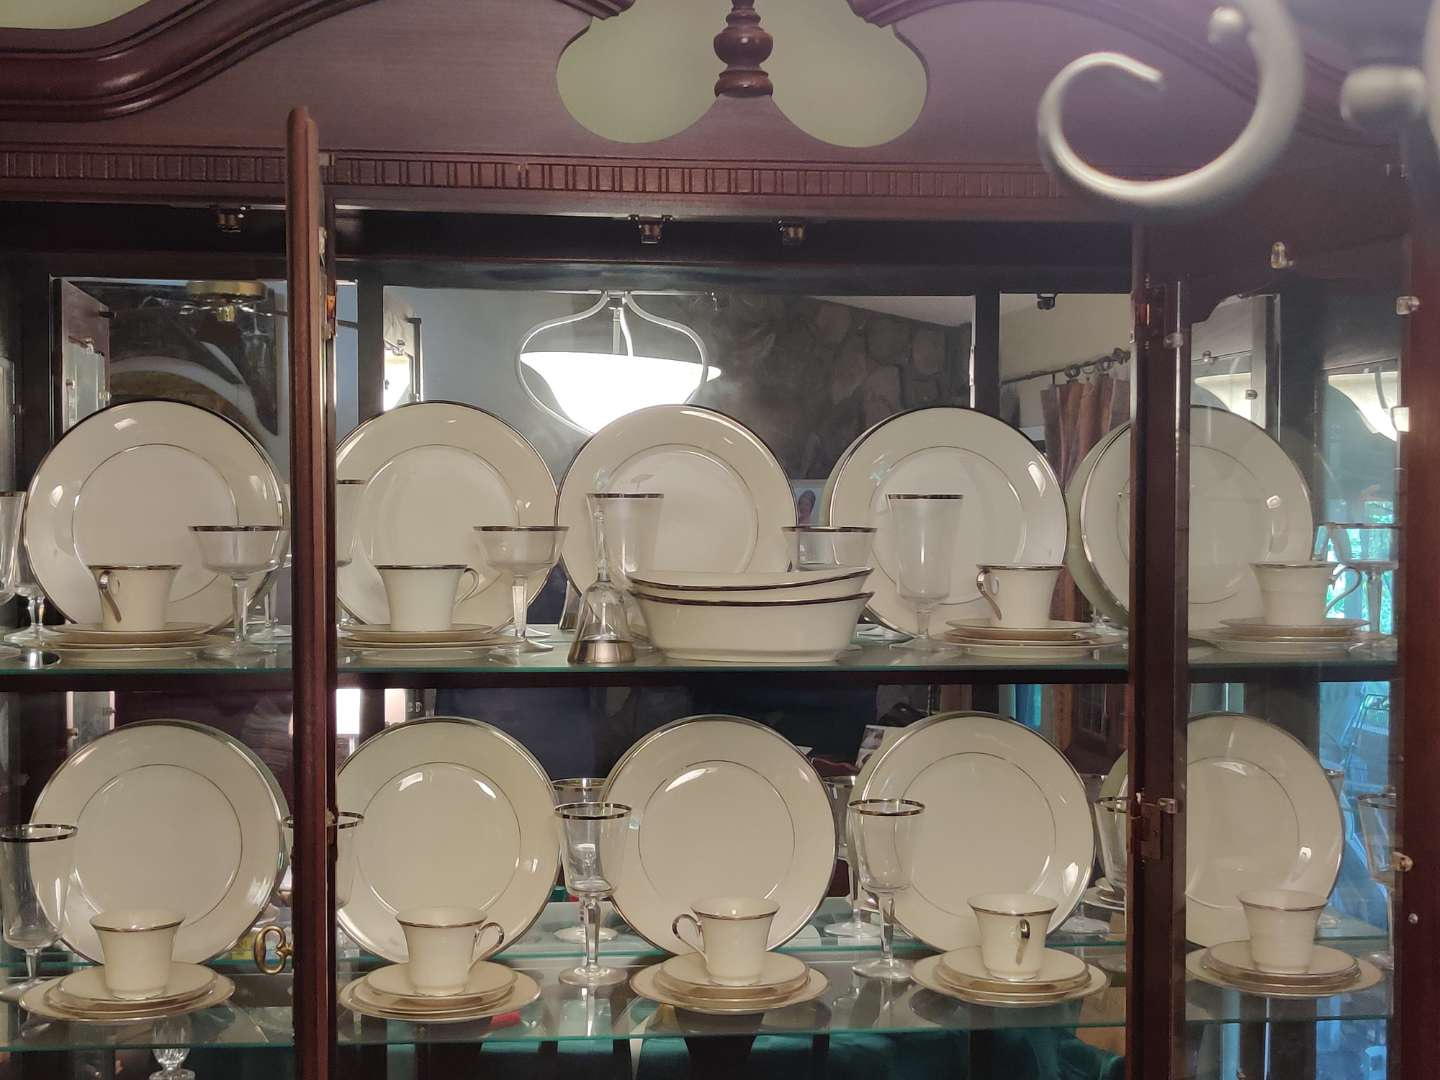 # 138 set of Lenox solitaire pattern China 60 pieces excellent condition does not look like it was used much if any